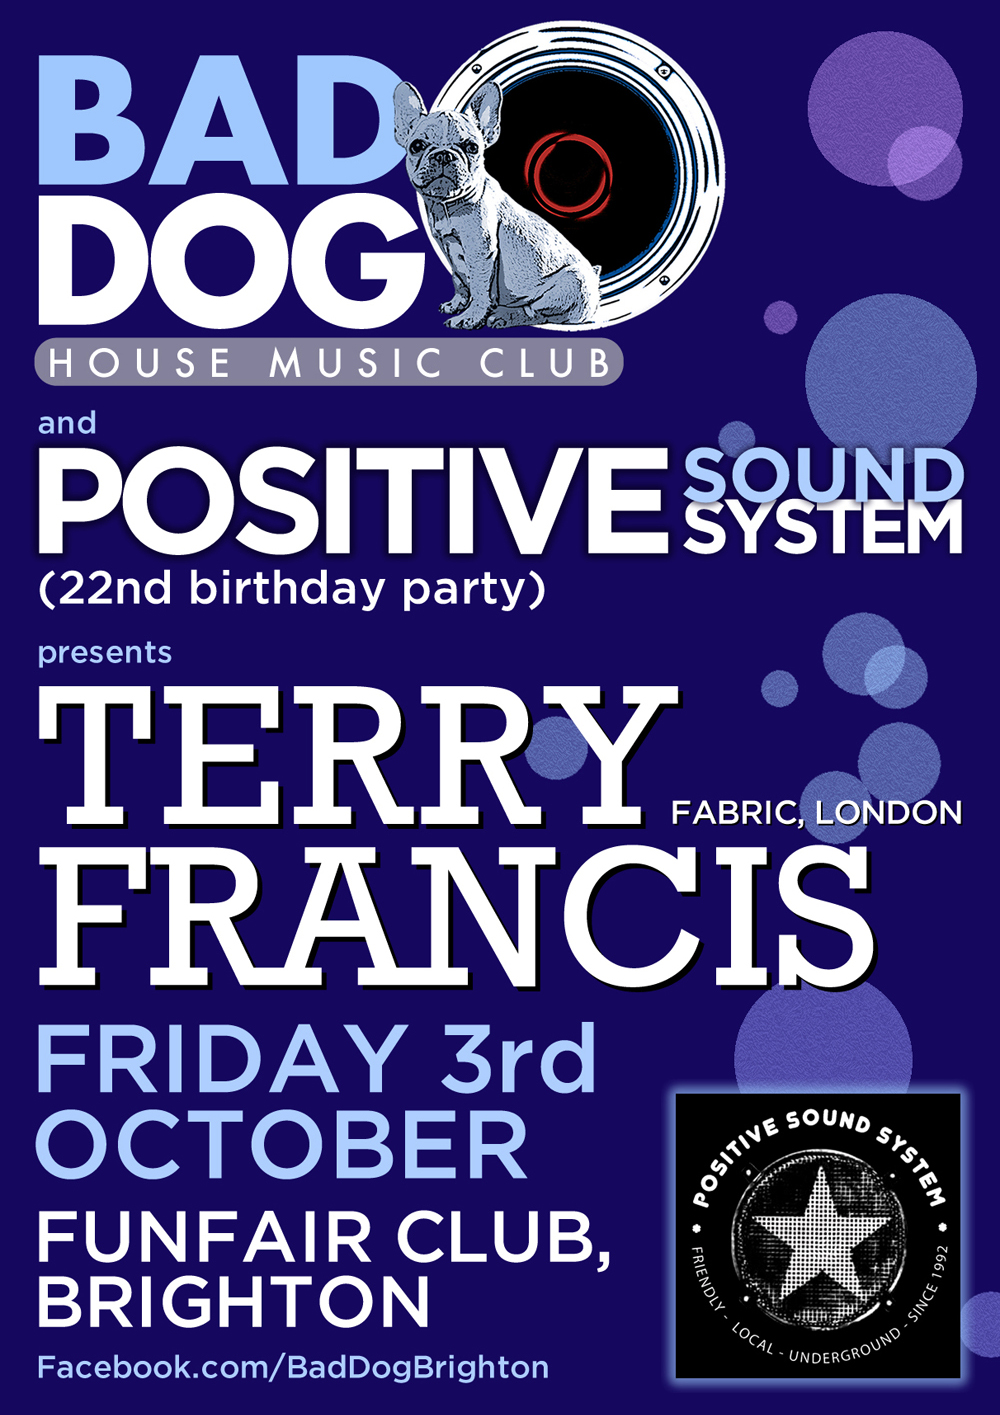 Bad Dog & Positive Sound System flyer